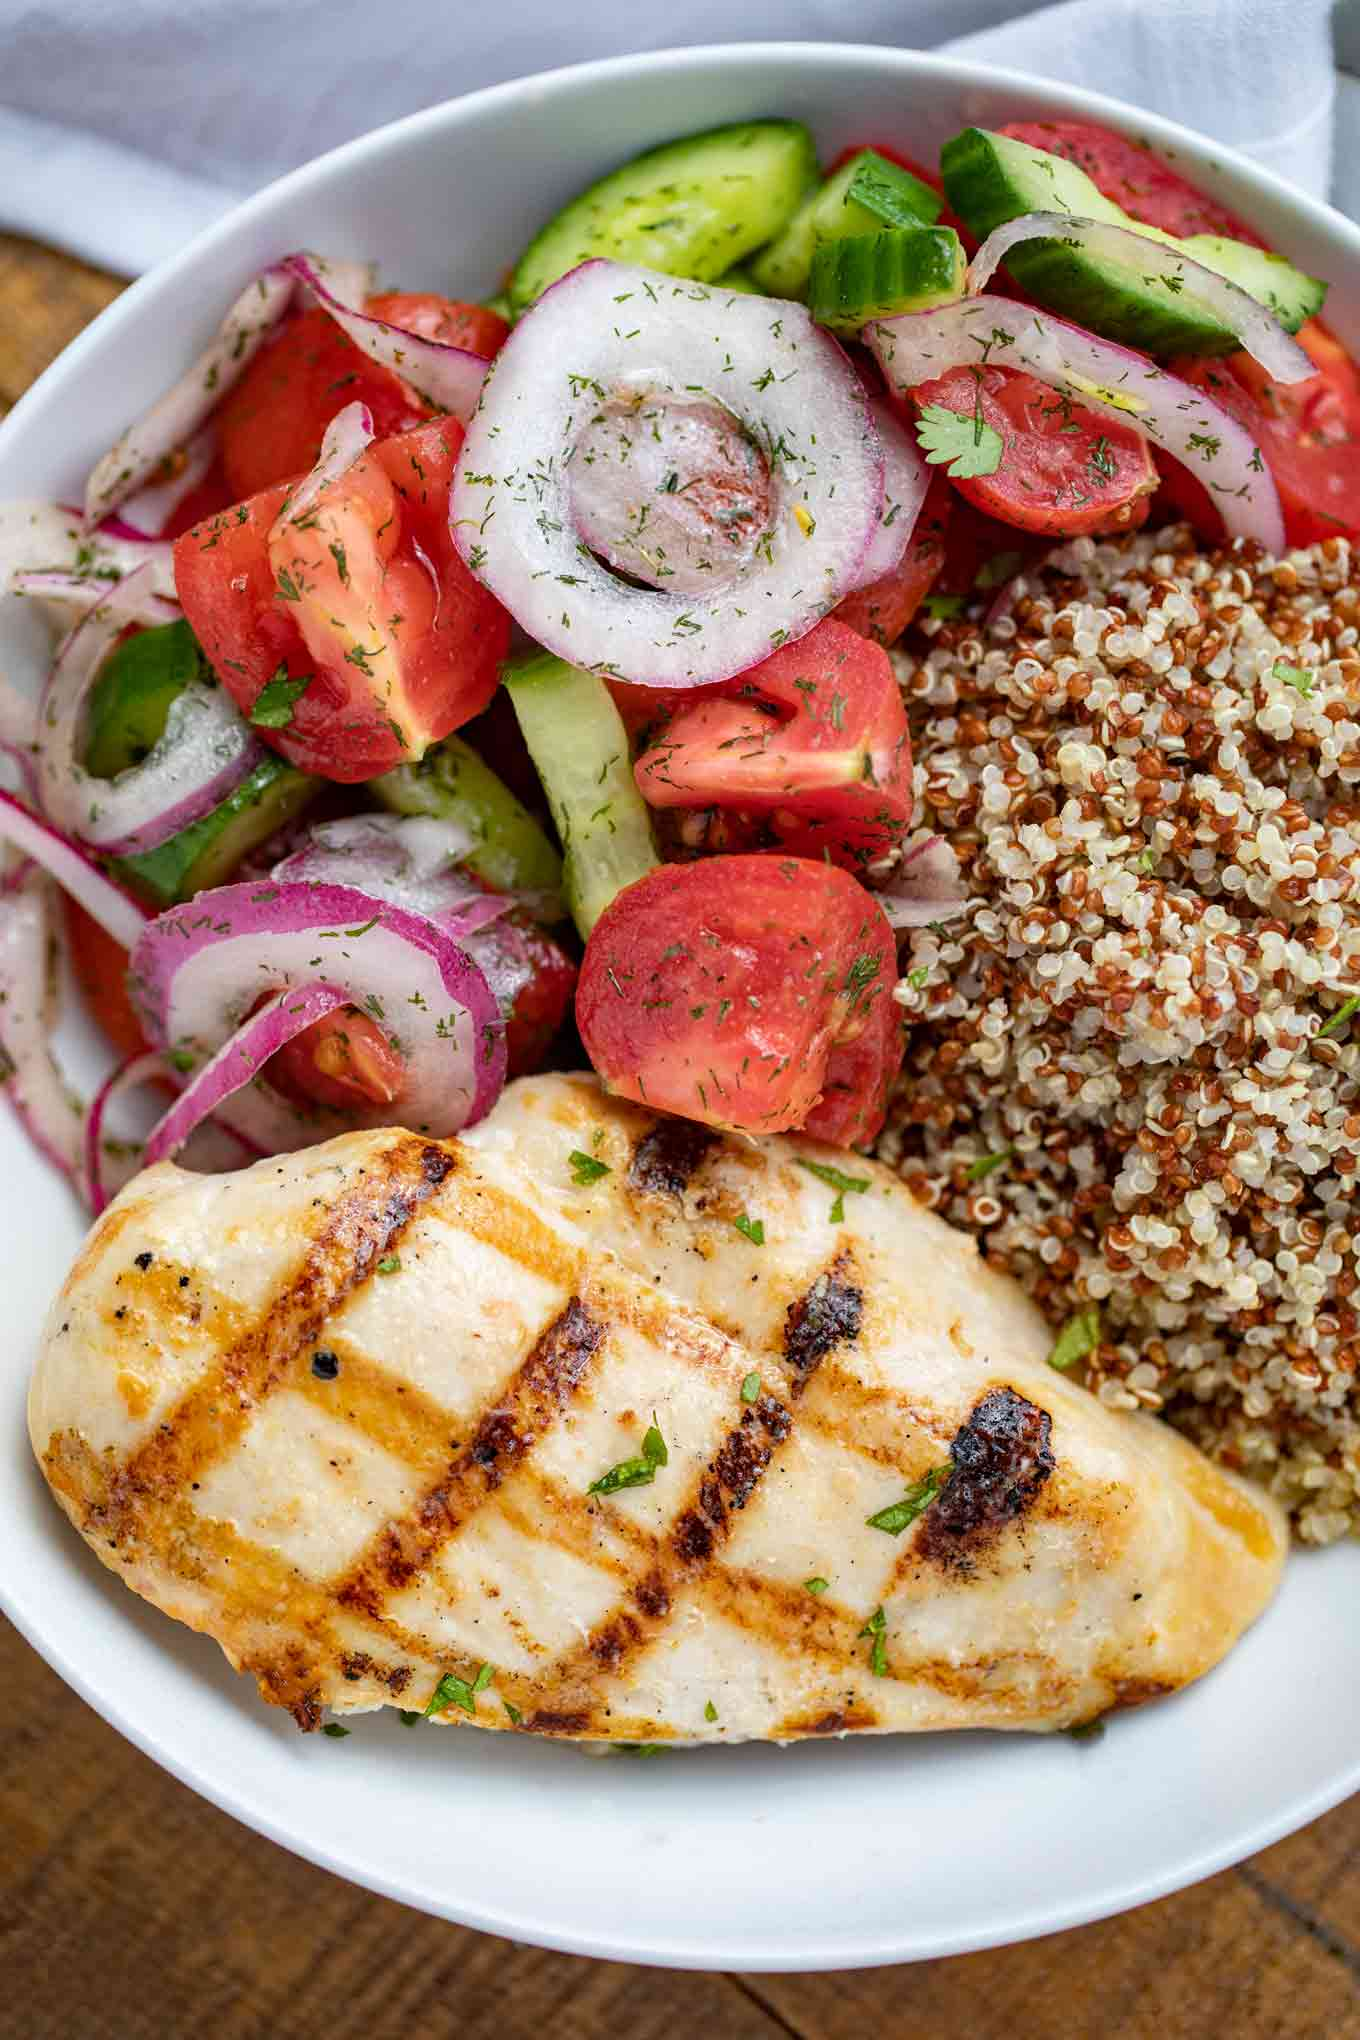 Grilled Chicken with Cucumber Tomato Salad and Quinoa in bowl